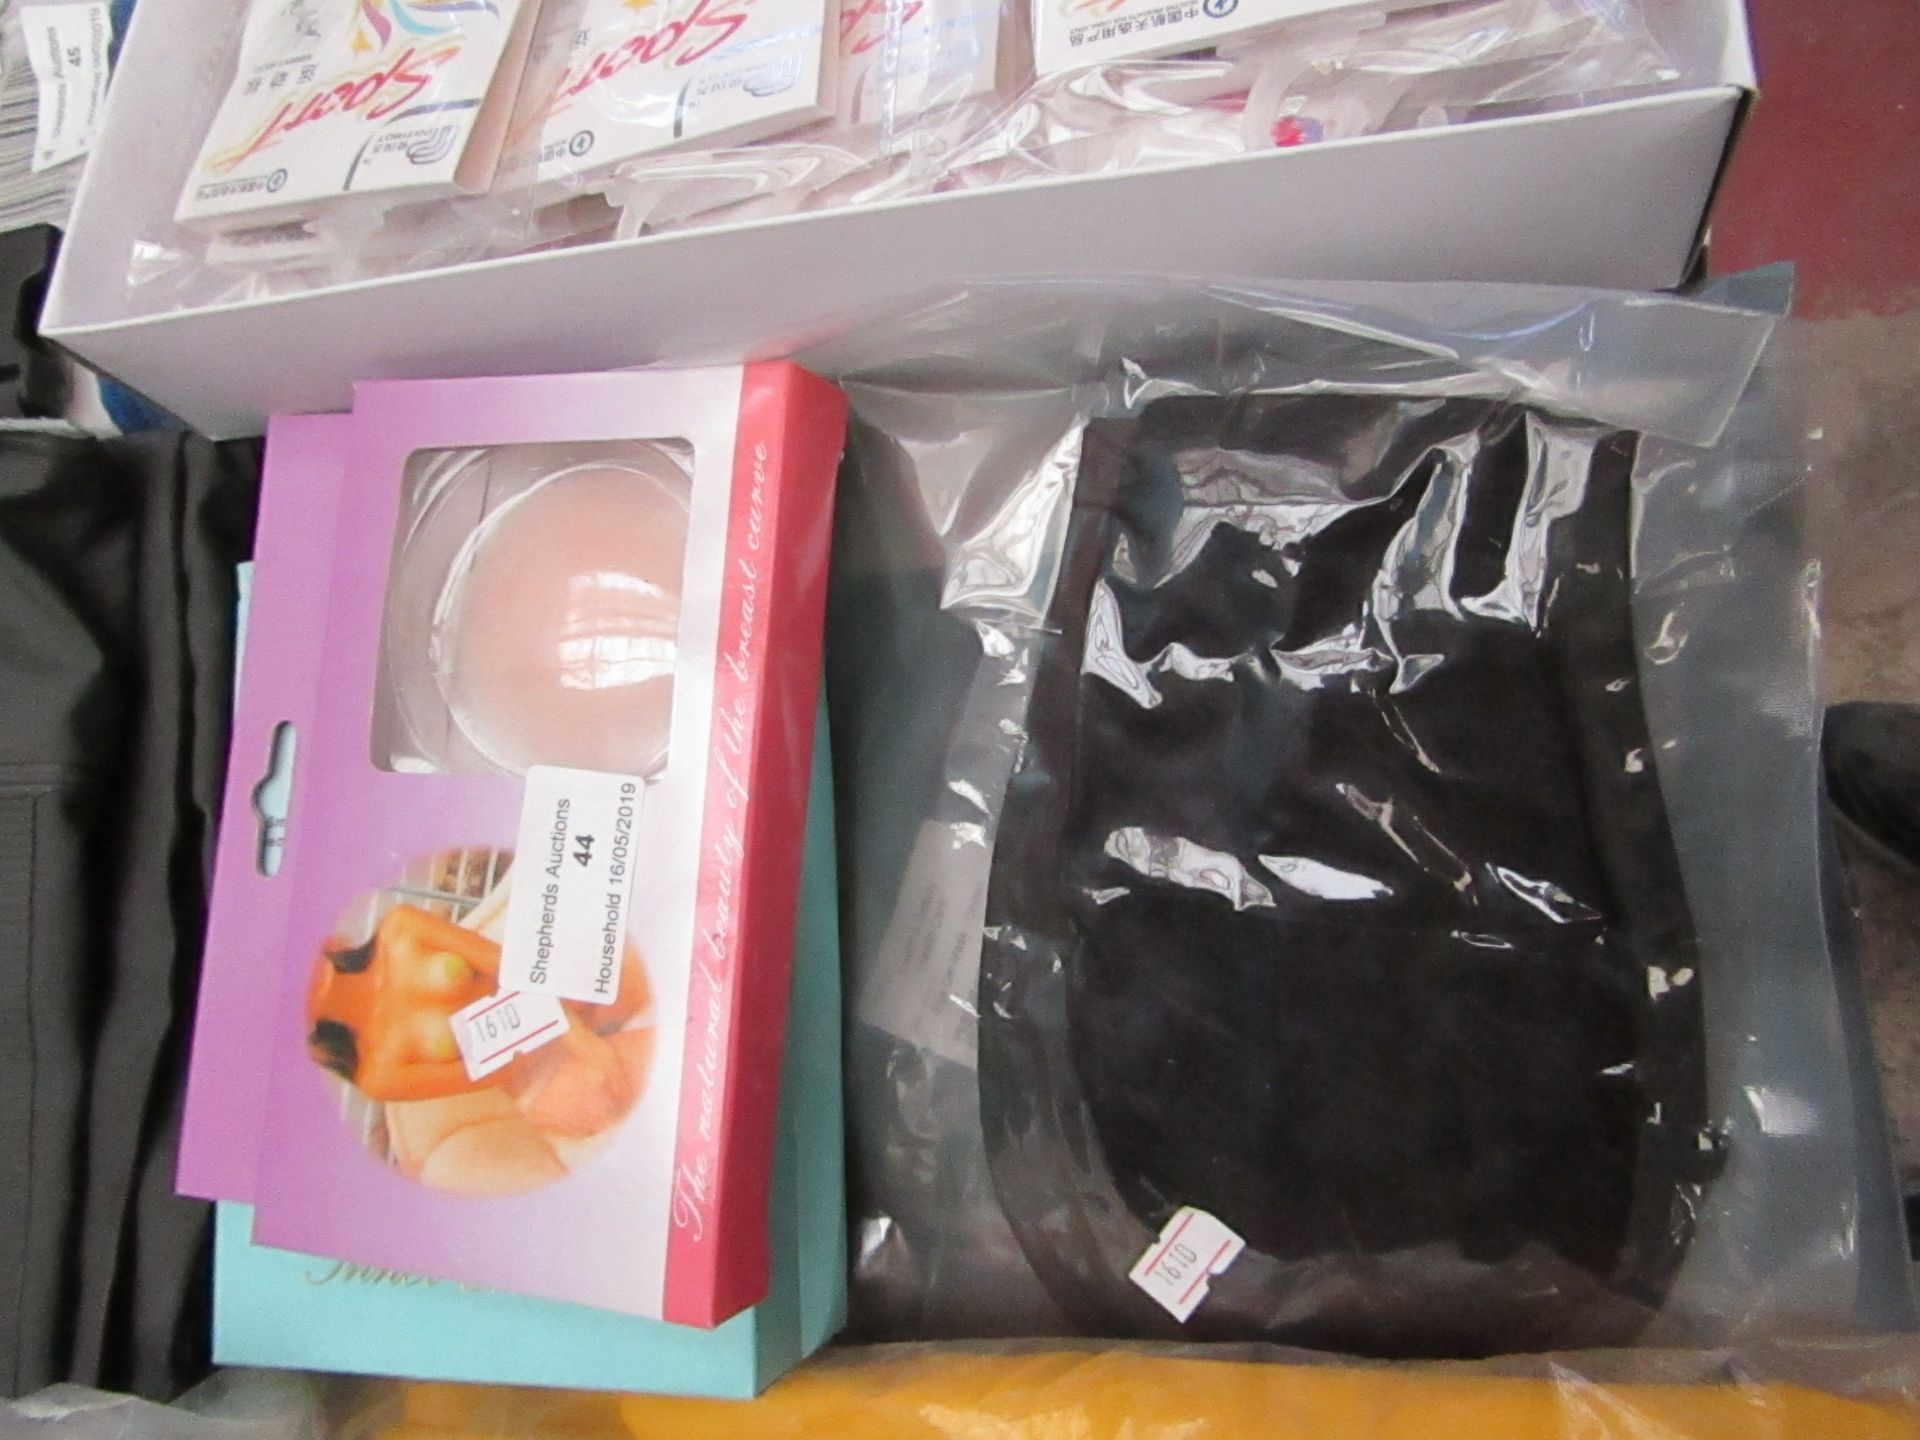 Lot 44 - 7x Various items such as face masks and nipple covers, all new and packaged.